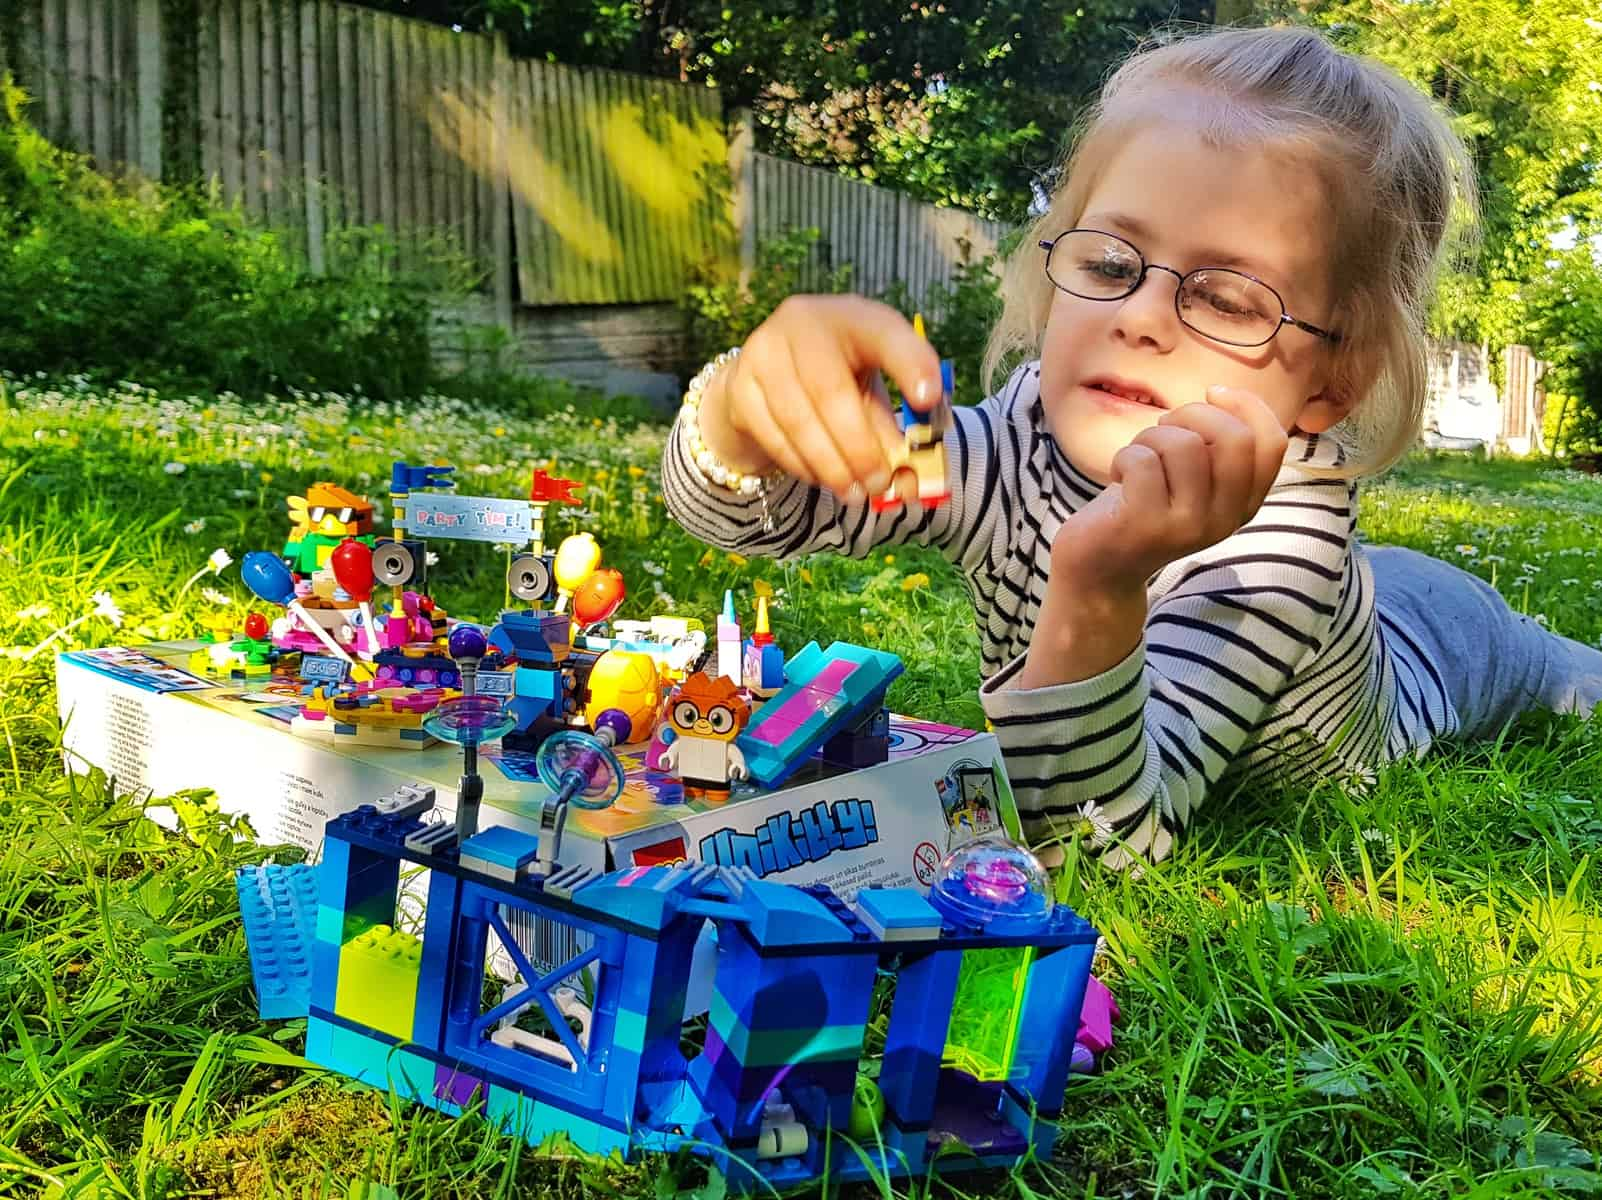 Little girl building a lego model in the garden - one of 100 ideas for summer holiday activities to beat boredom